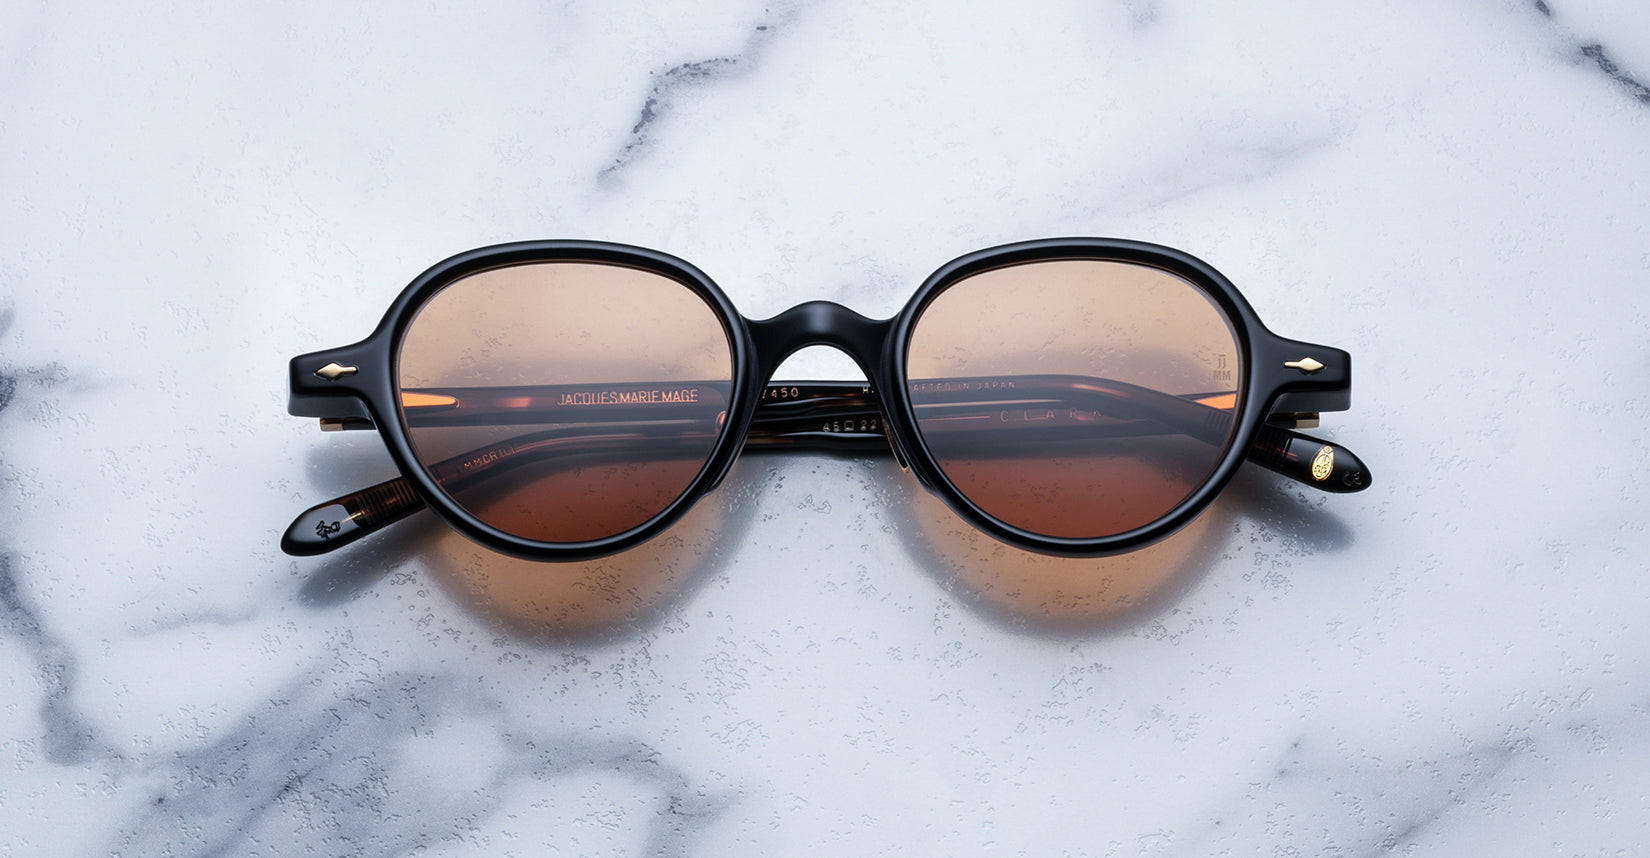 Jacques Marie Mage Clark Noir Limited Edition Sunglasses